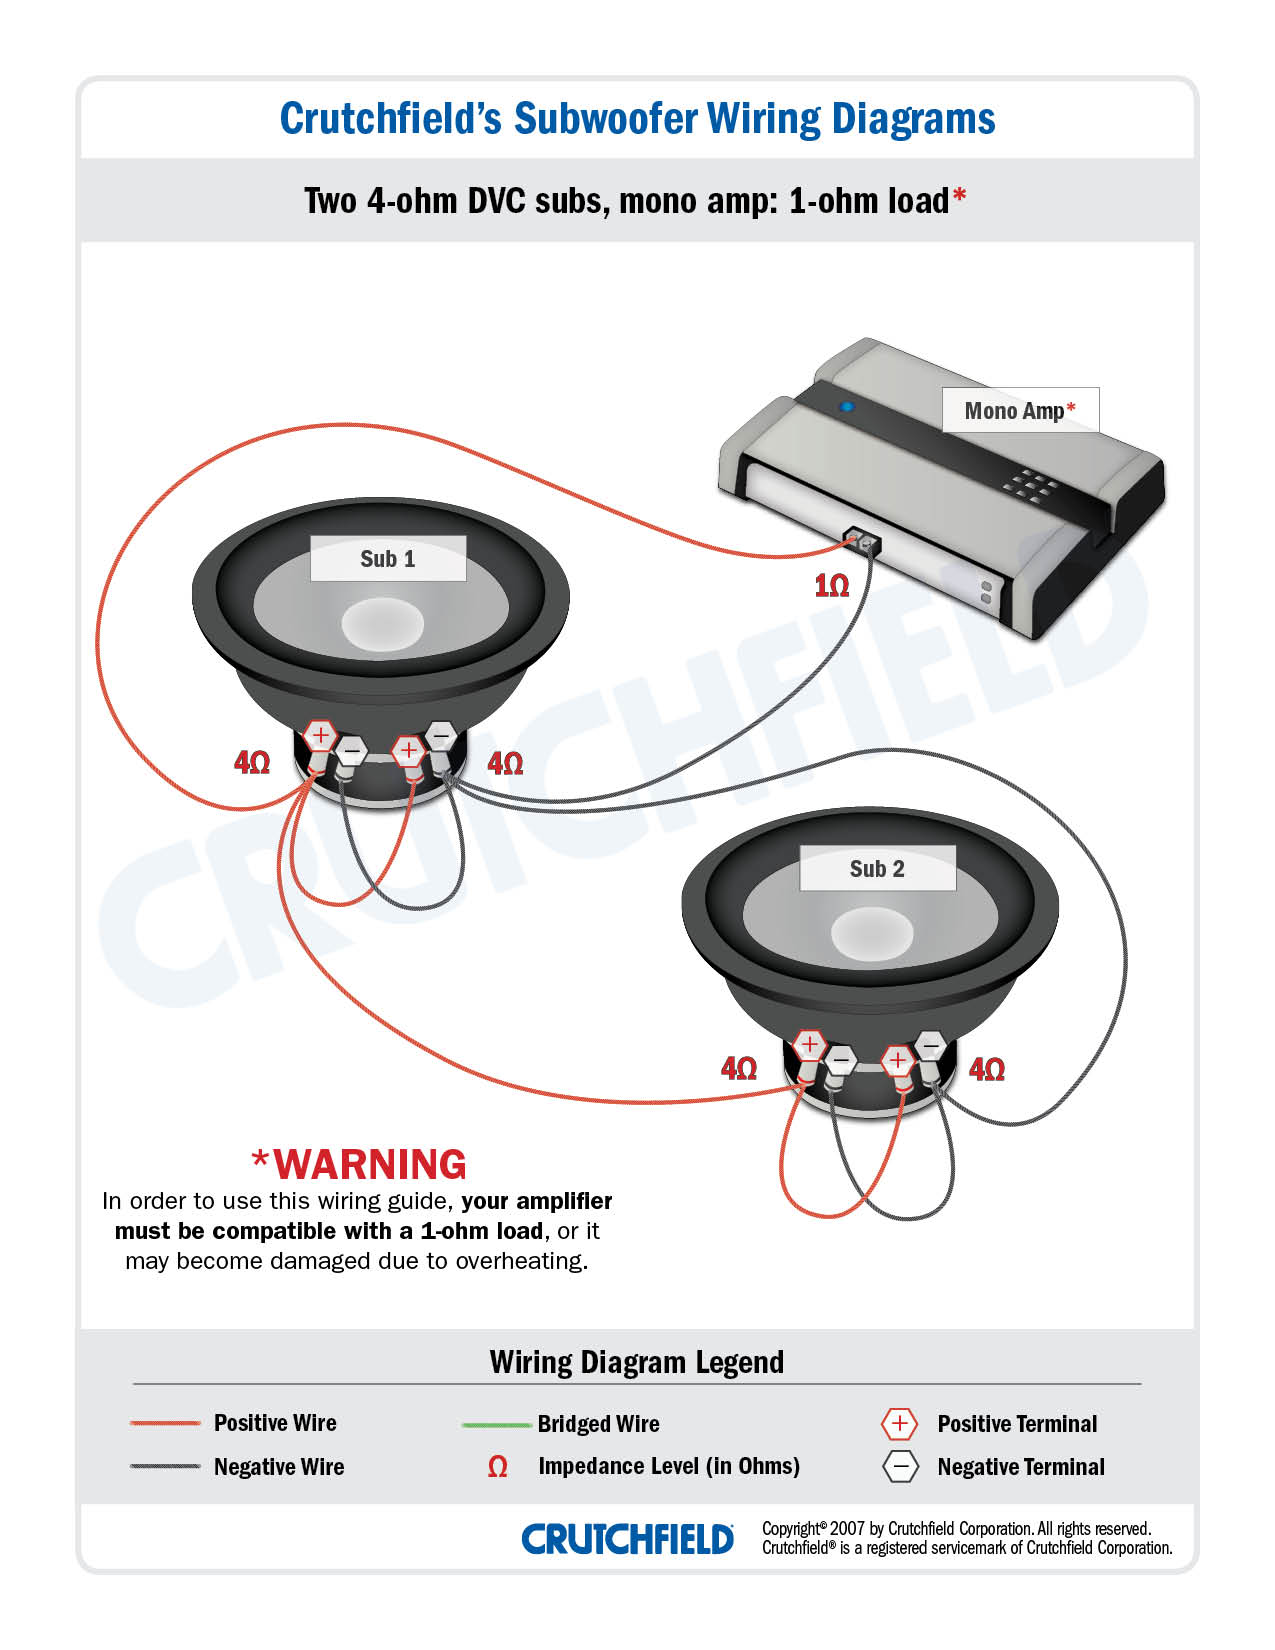 subwoofer wiring diagrams how to wire your subs ohm sub woofer diagram one ohm load,